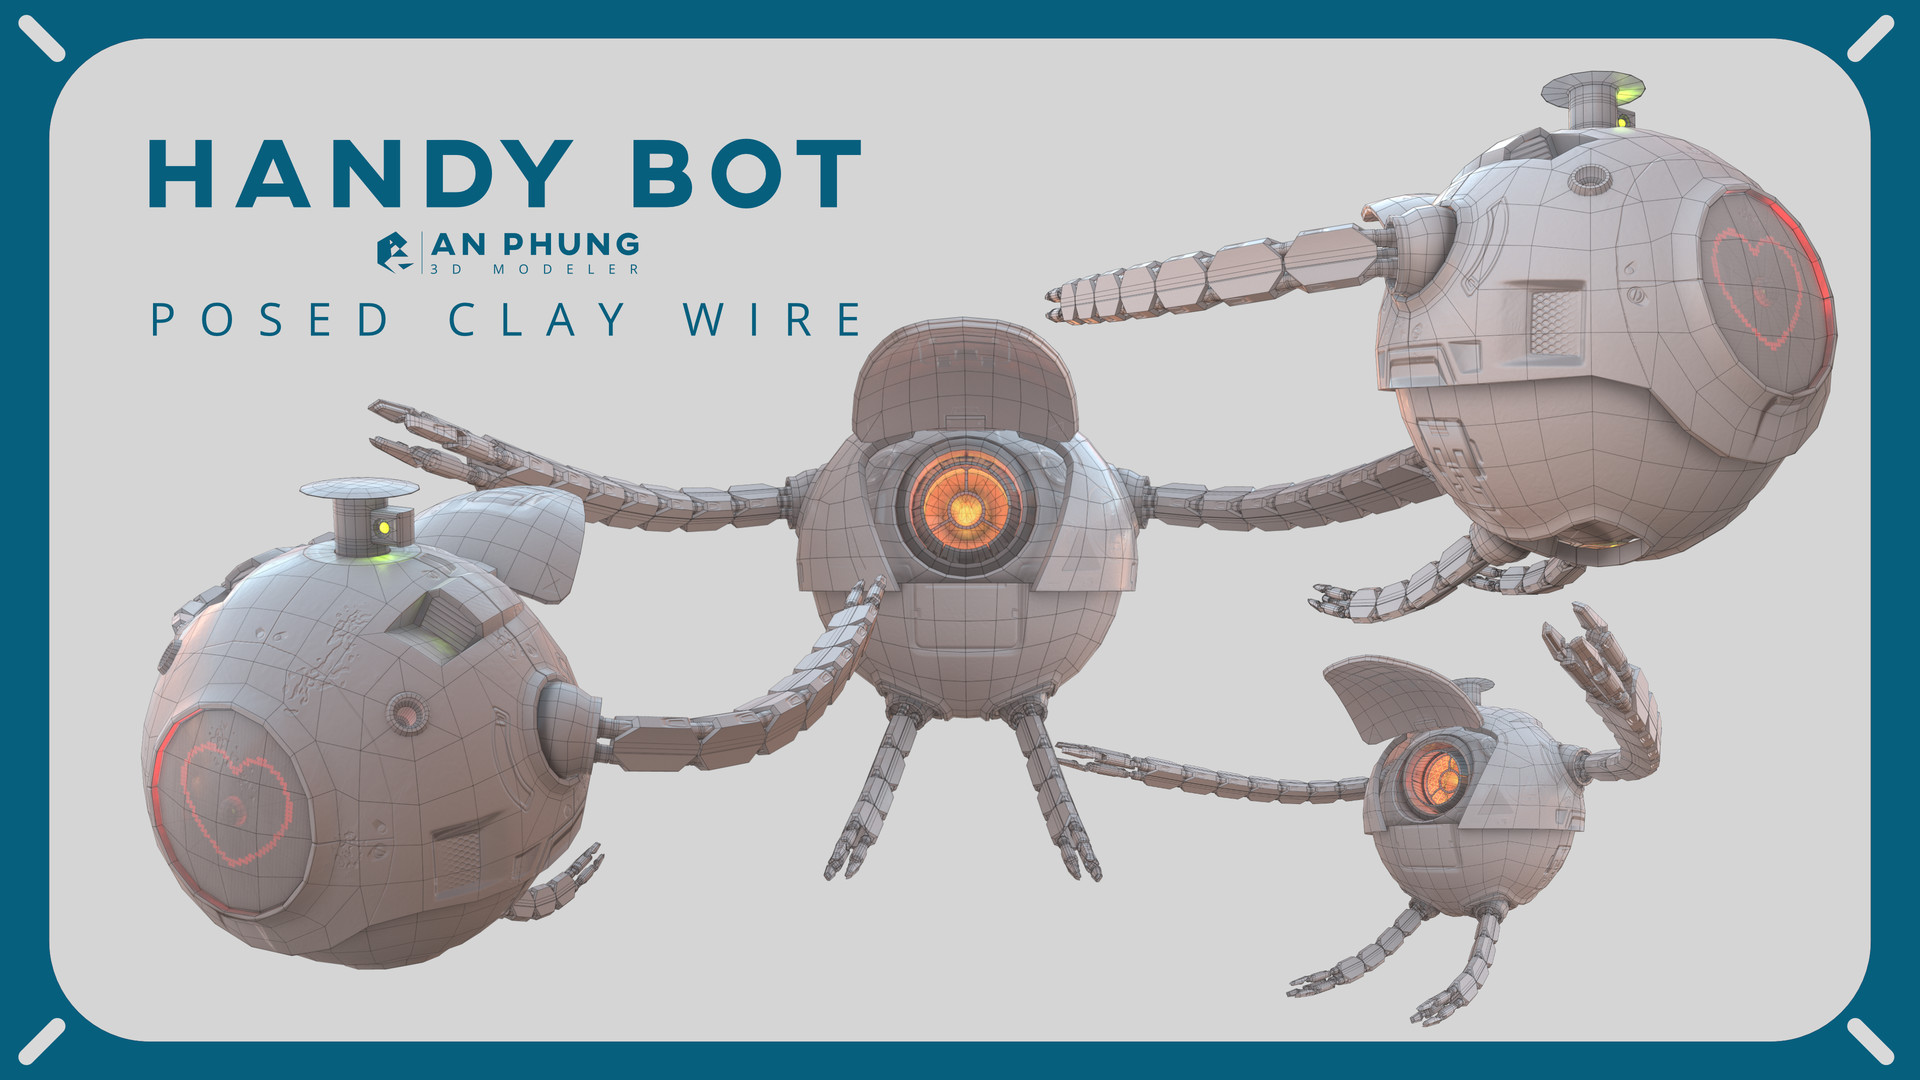 An phung phung handybot final posed clay wire